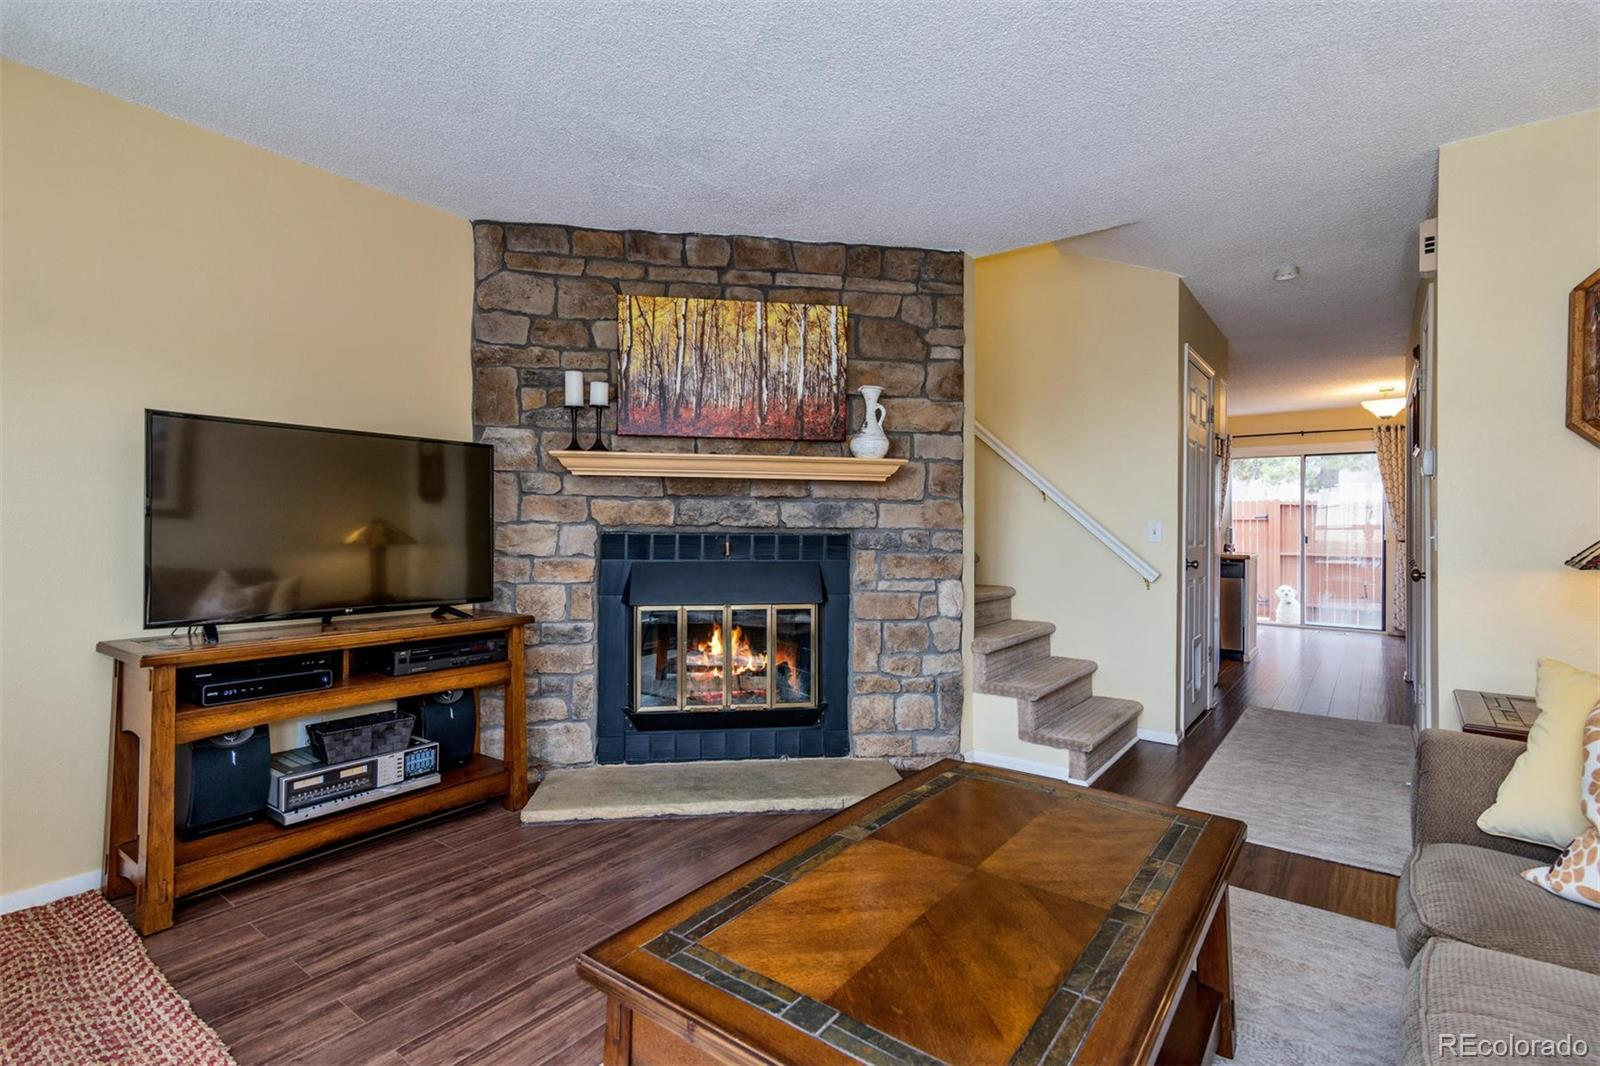 MLS# 6379353 - 4 - 8846 W Dartmouth Place, Lakewood, CO 80227